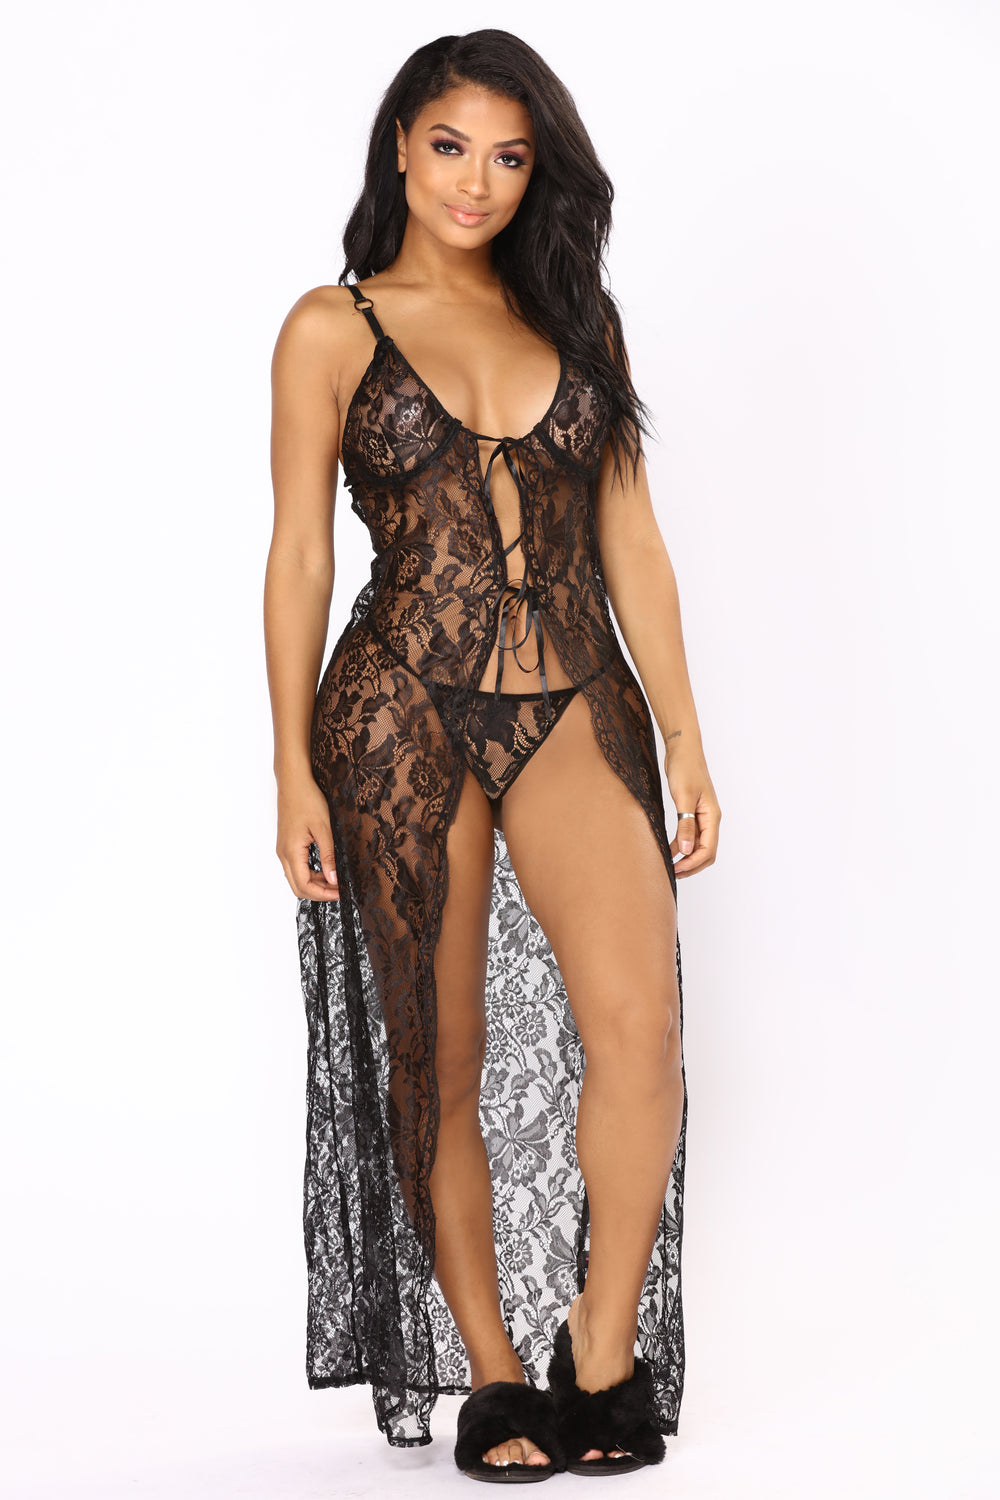 Laced In Motion Robe - Black